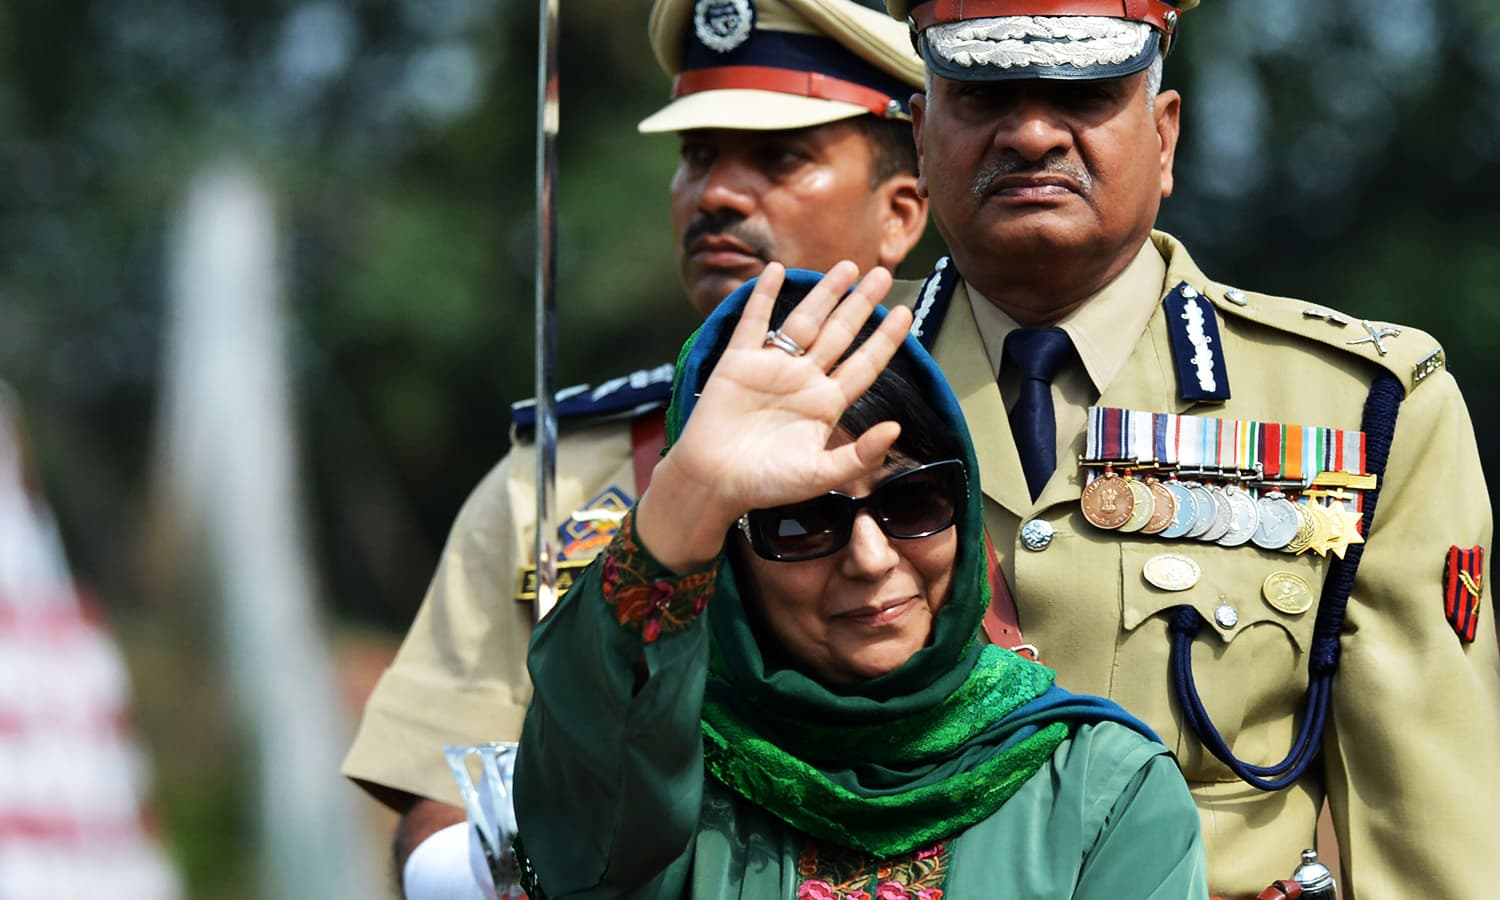 IHK Chief Minister Mehbooba Mufti waves during celebrations marking Independence Day at The Bakshi Stadium in Srinagar. — AFP